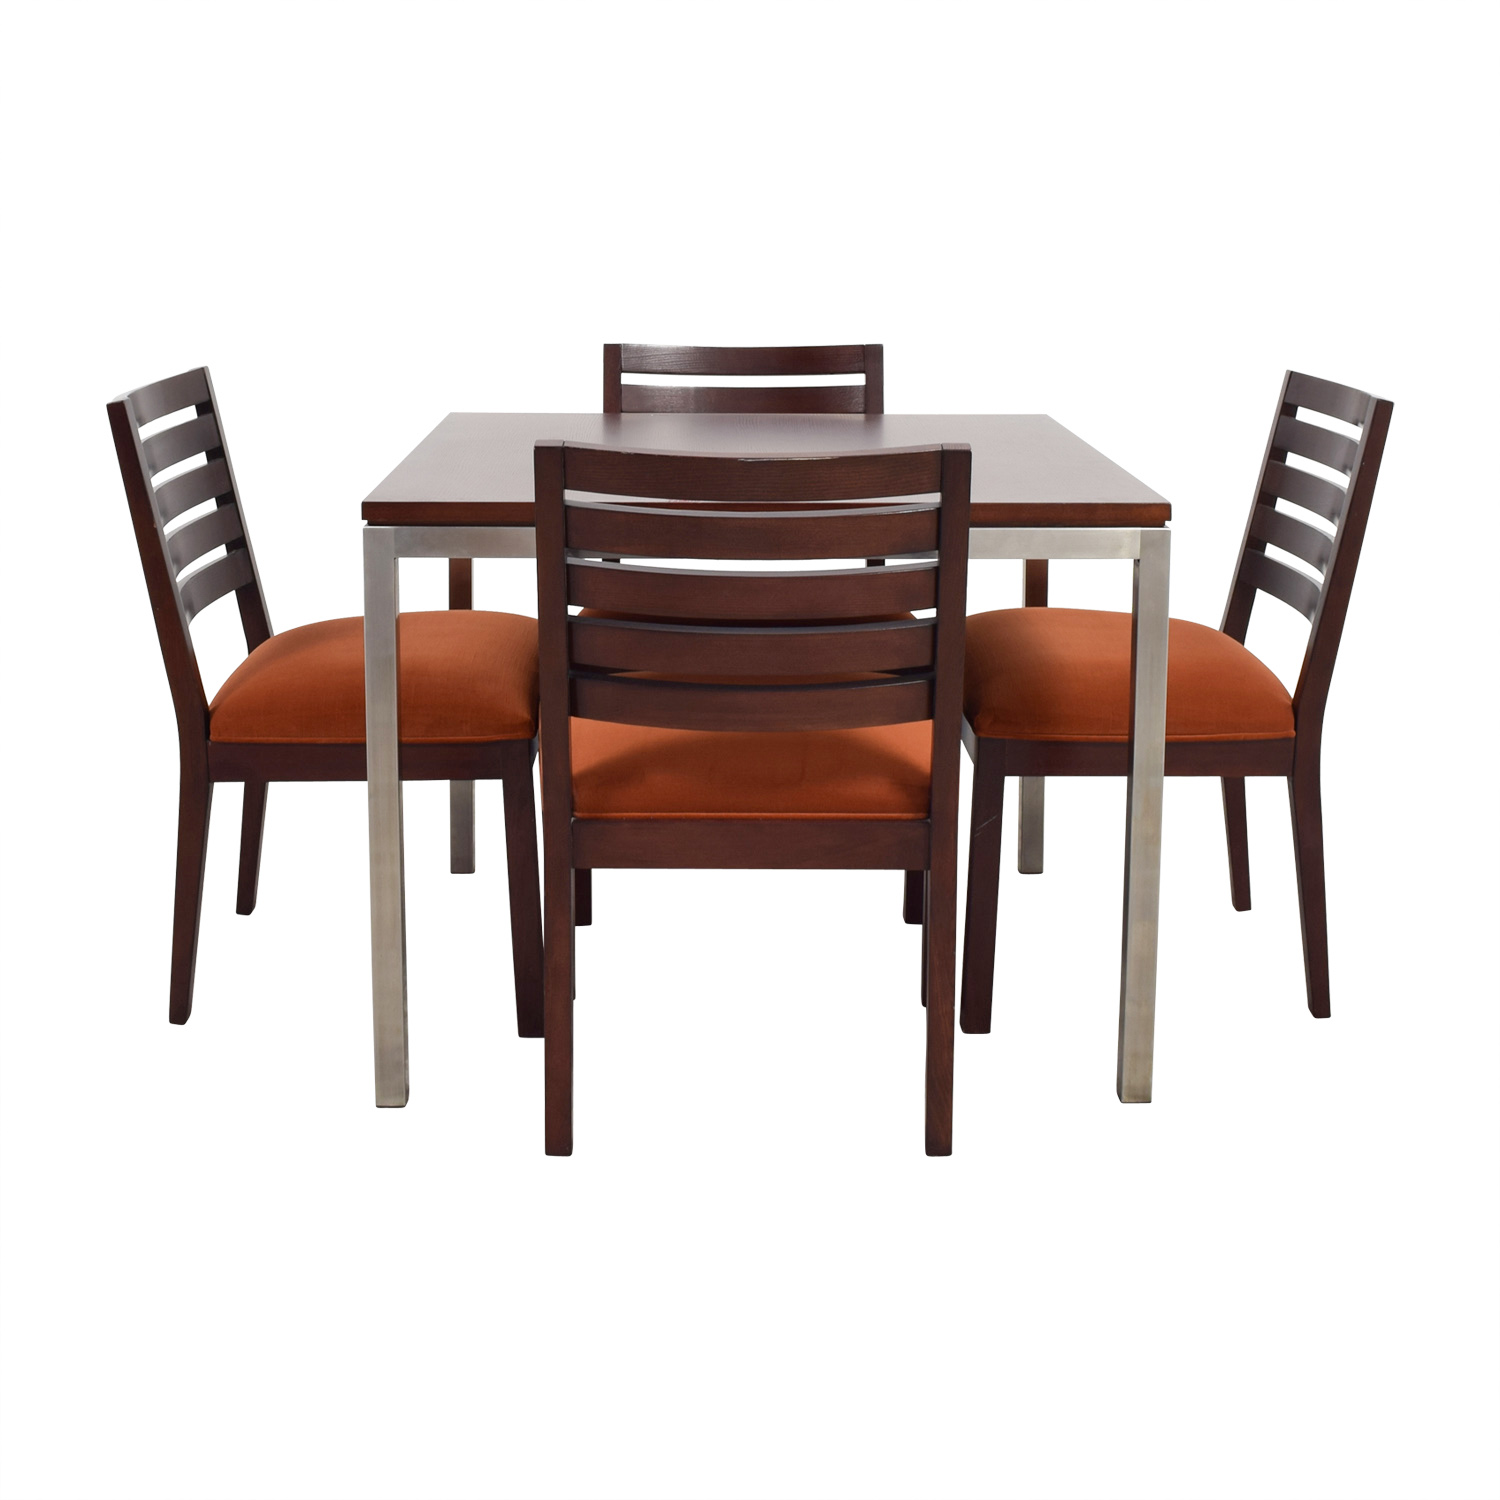 Ethan Allen Ethan Allen Wood and Chrome Dining Set nj